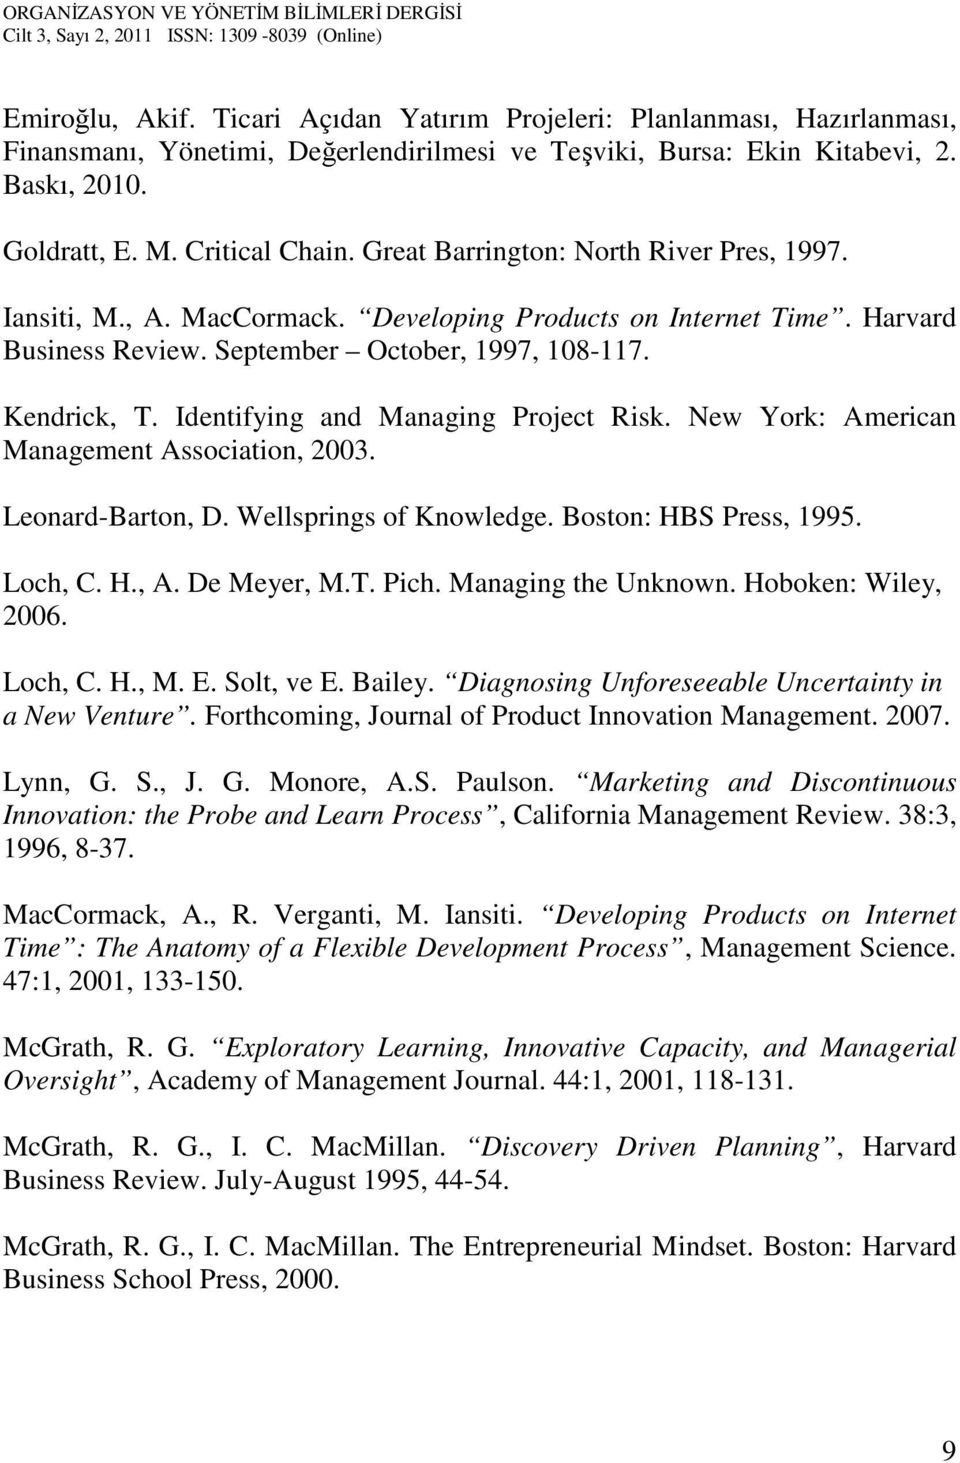 Identifying and Managing Project Risk. New York: American Management Association, 2003. Leonard-Barton, D. Wellsprings of Knowledge. Boston: HBS Press, 1995. Loch, C. H., A. De Meyer, M.T. Pich.